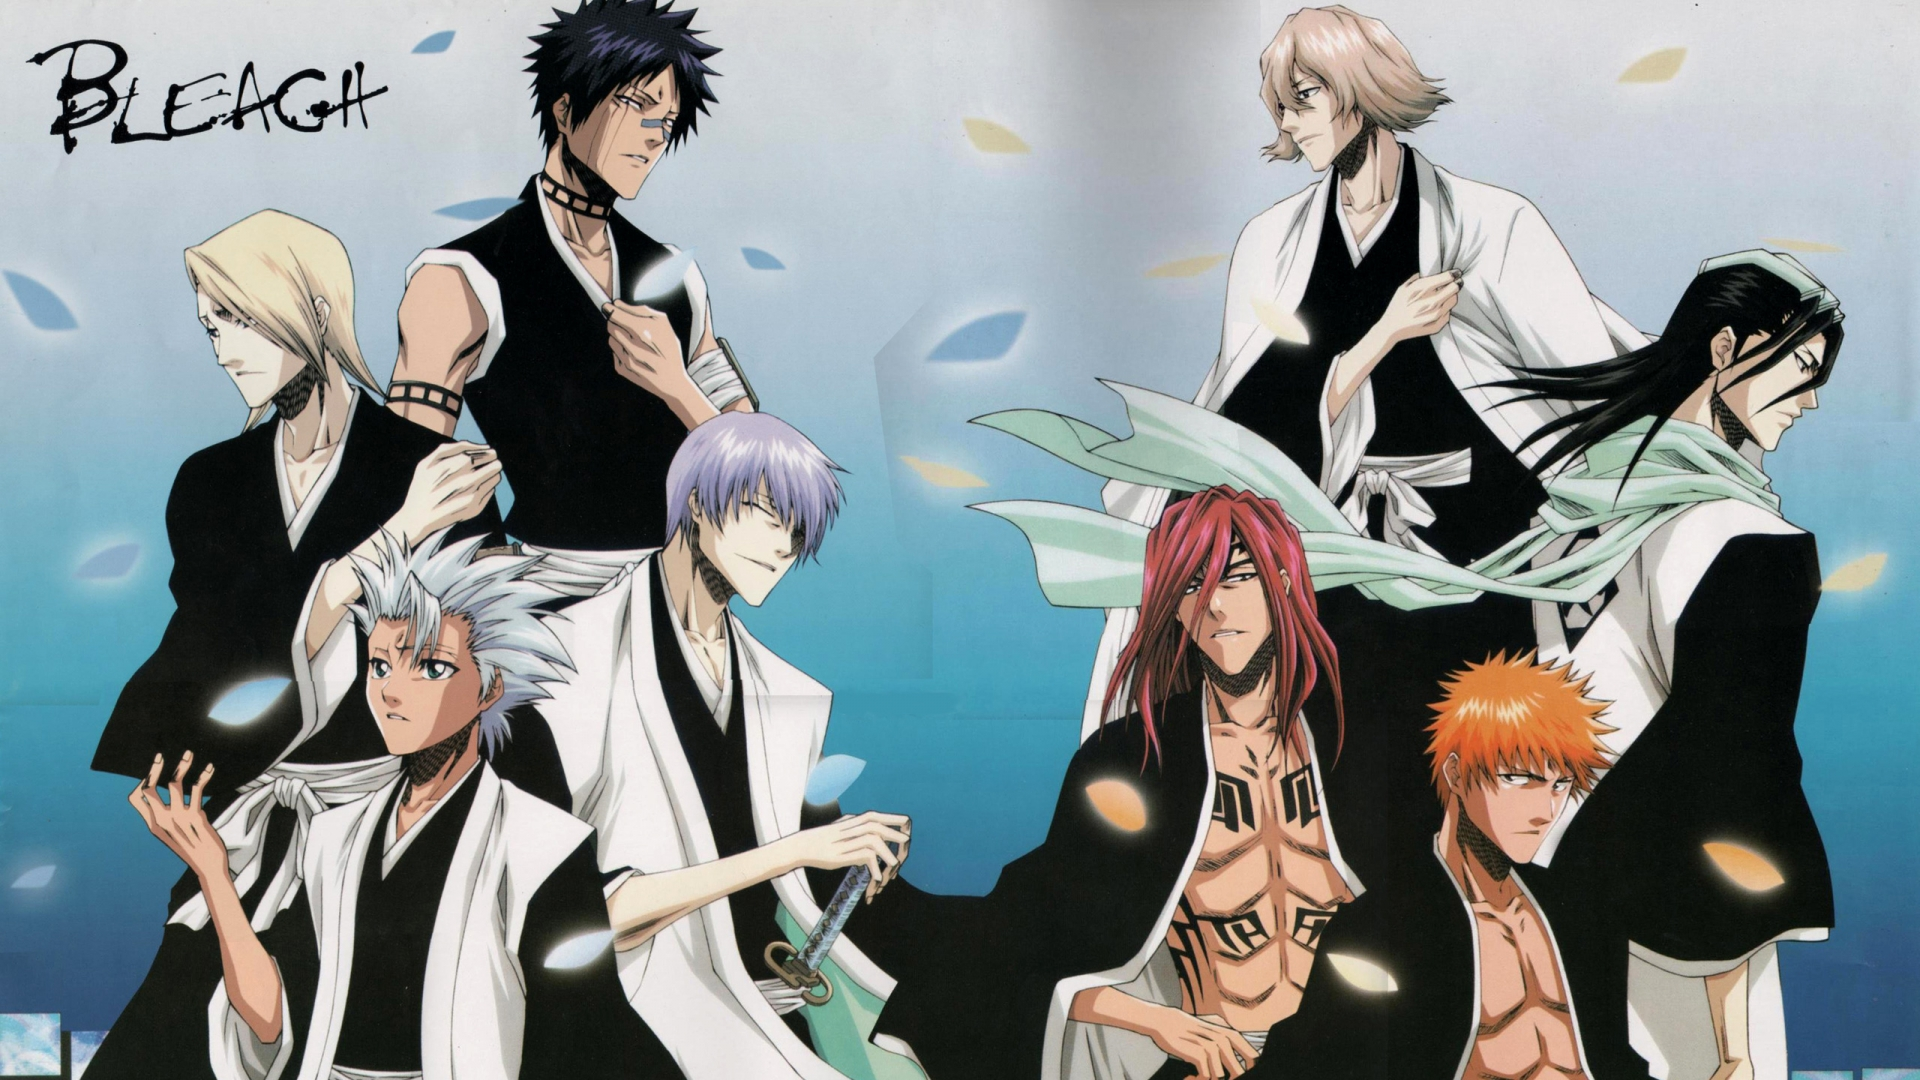 bleach wallpaper bleach wallpapers download bleach wallpapers from 1920x1080